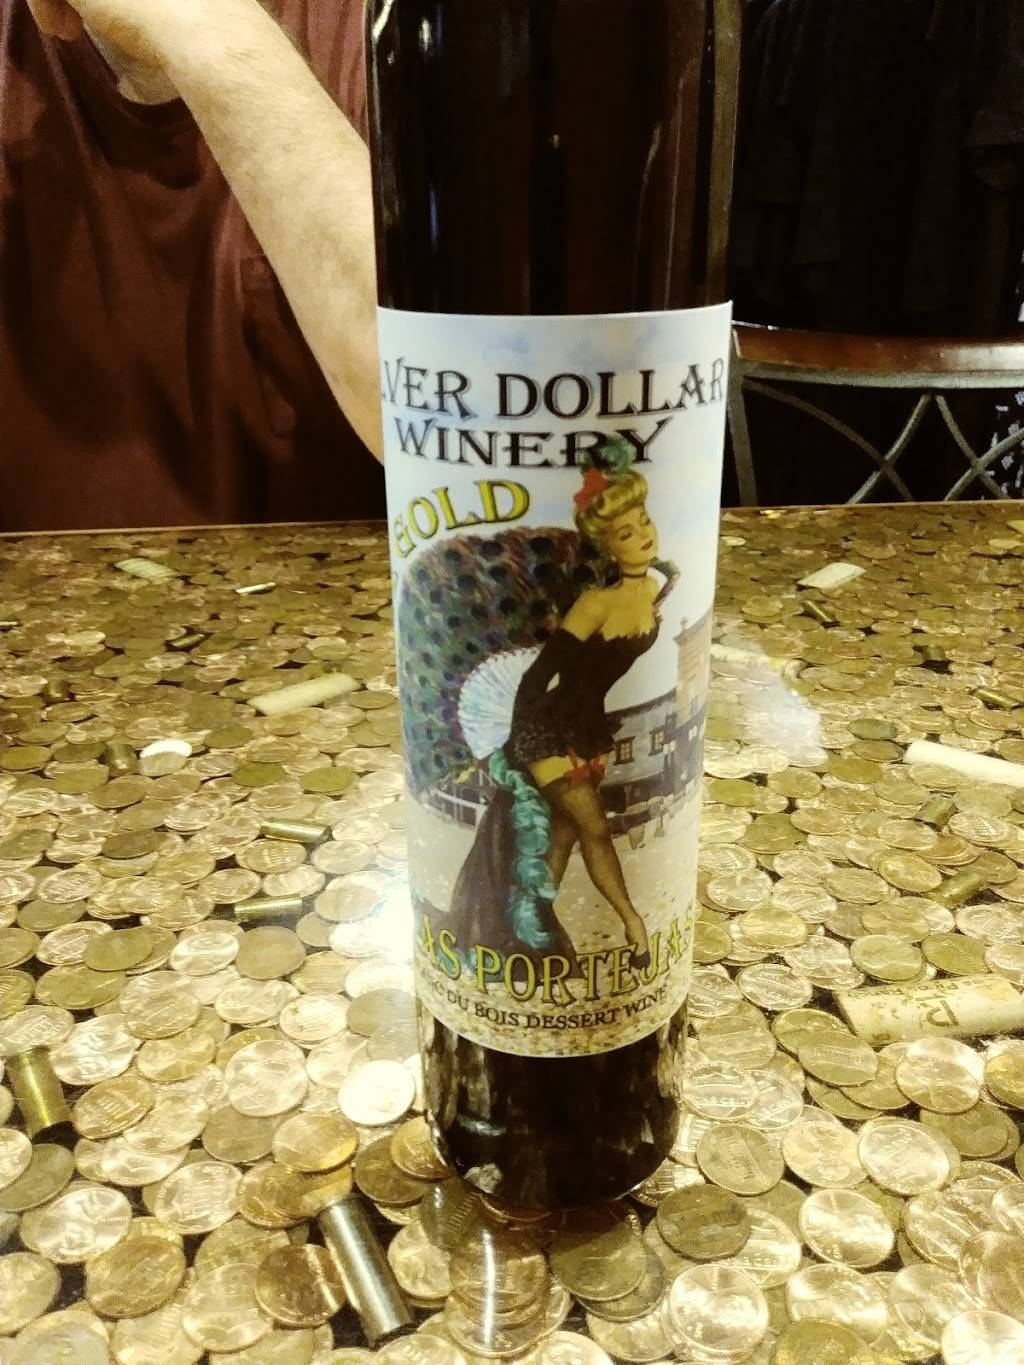 Silver Dollar Winery - store  | Photo 3 of 10 | Address: 1937 Bedford Rd, Bedford, TX 76021, USA | Phone: (817) 358-8830